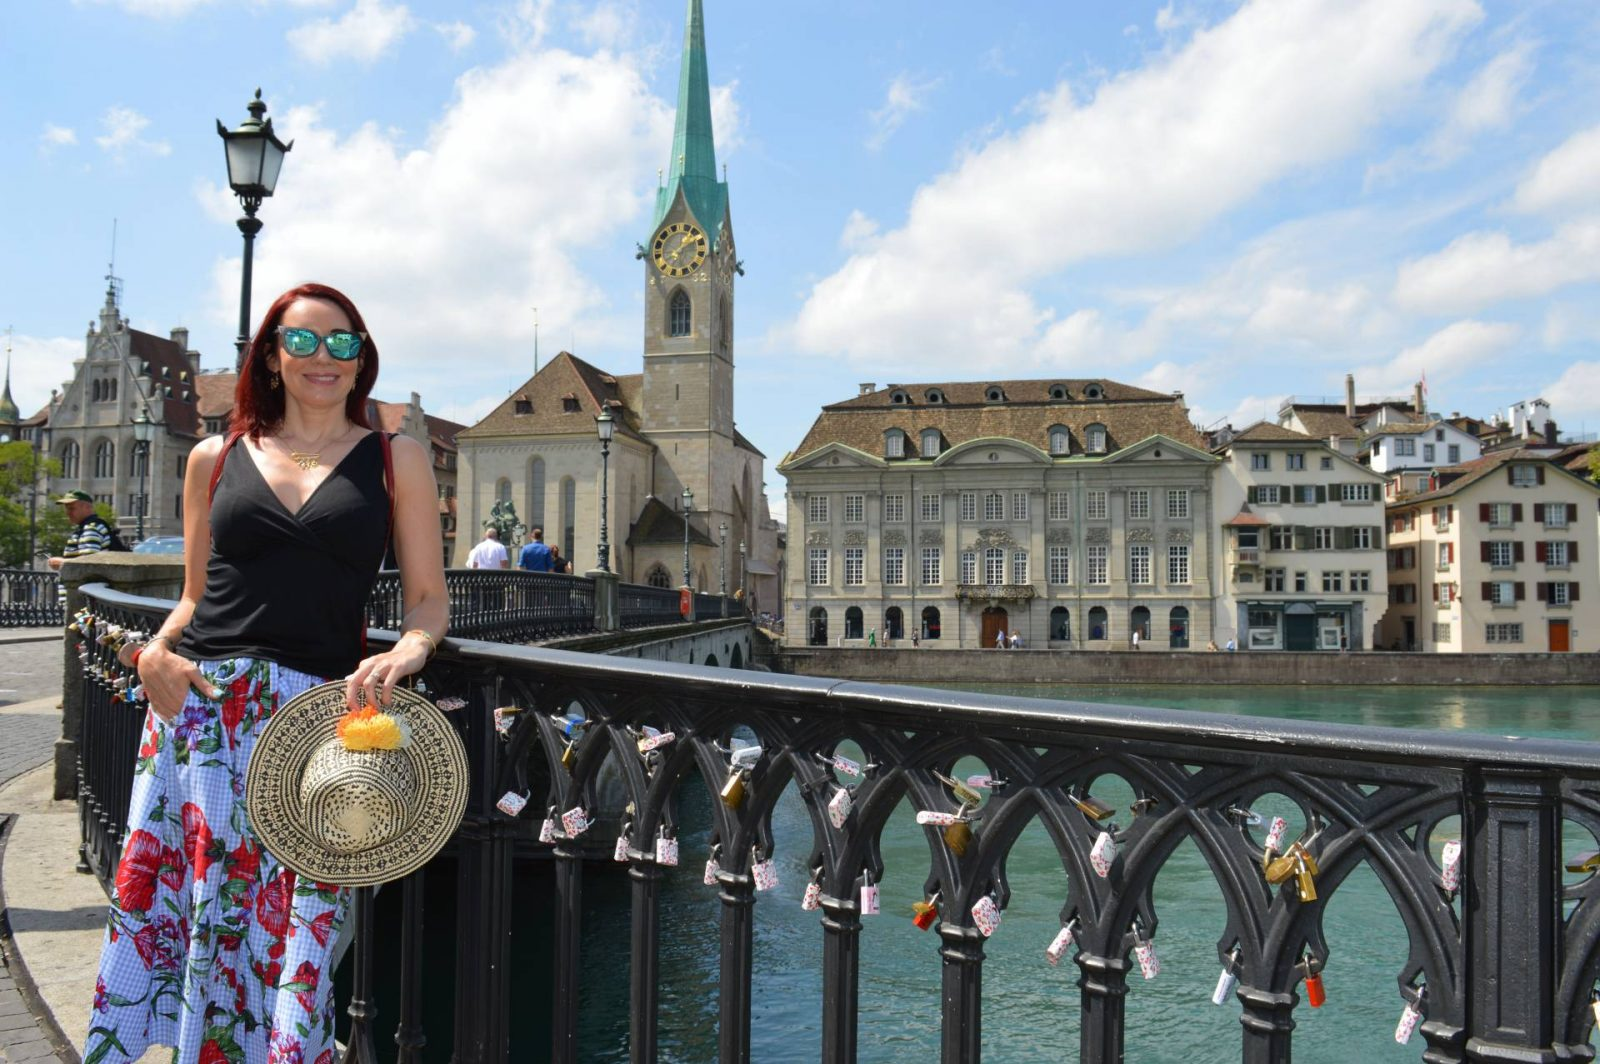 A Comfortable, Chic Outfit For a Day Sightseeing in Zurich Zara gingham floral print skirt Amevie sunglasses, Mango straw hat